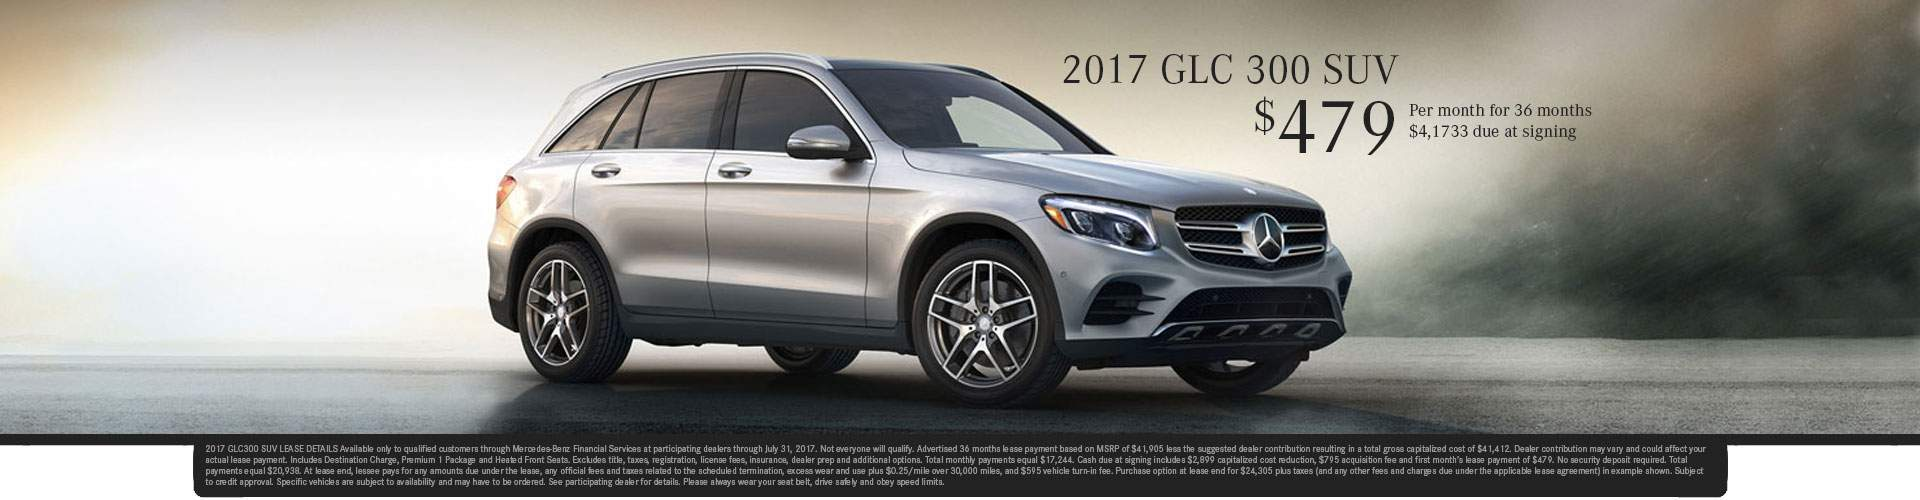 2017 GLC 300 SUV Special Offer